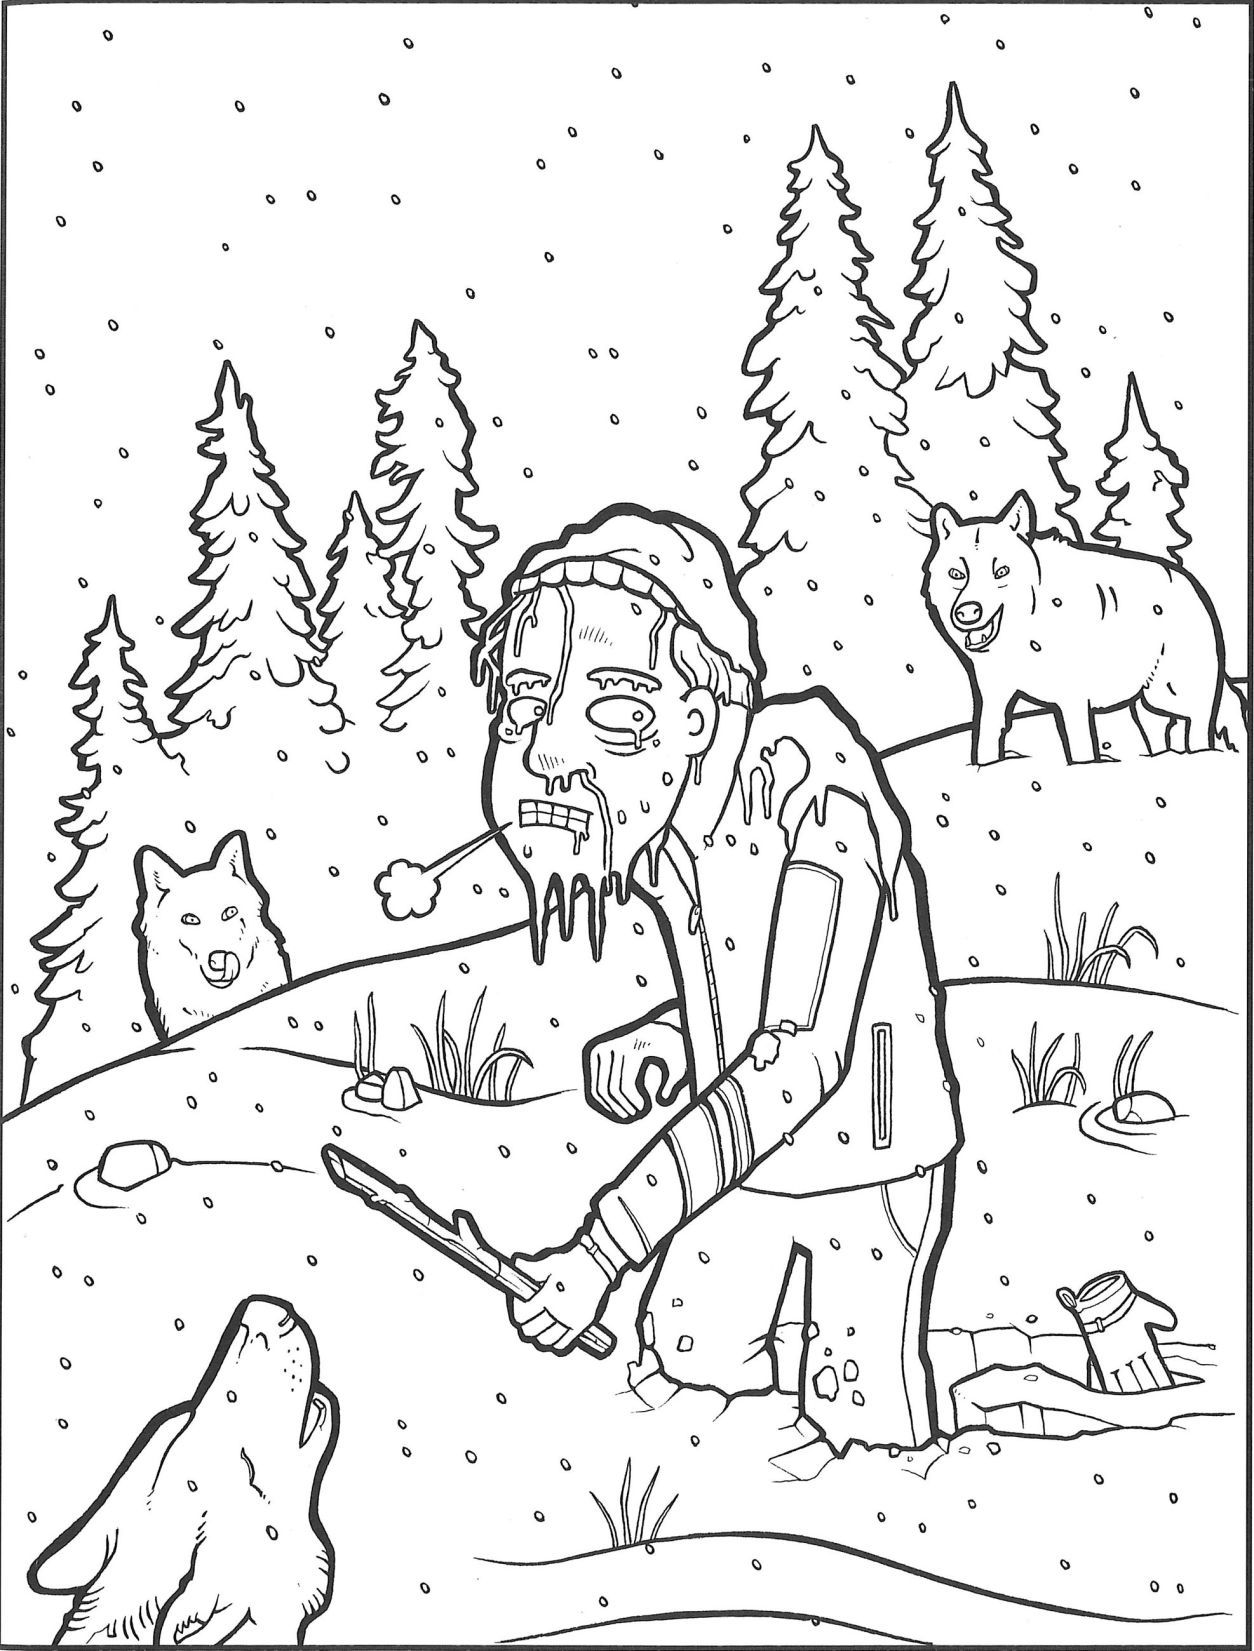 Yellowstone National Park Coloring Pages At Getdrawings